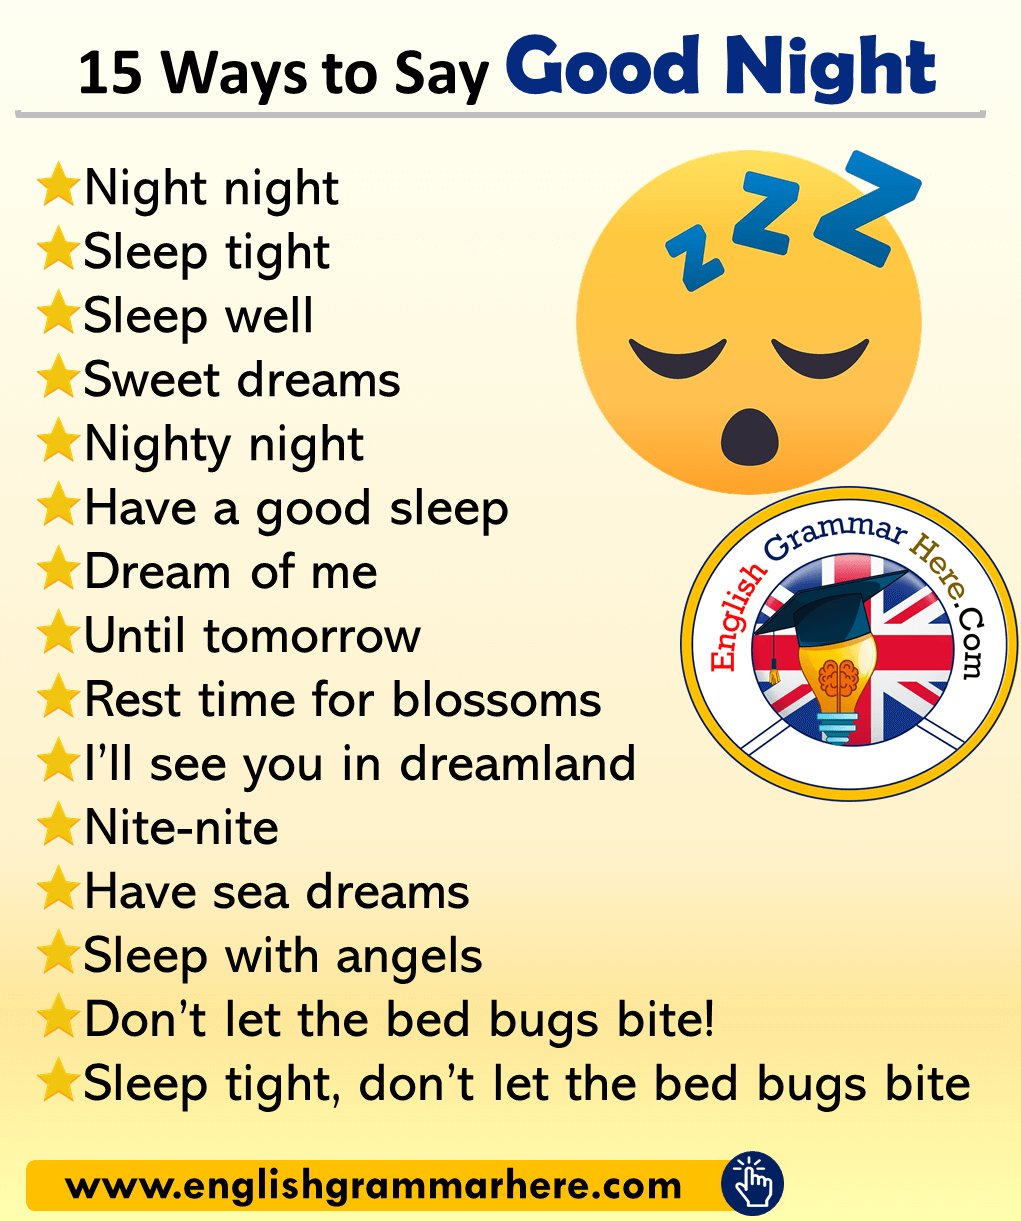 15 Ways to Say Good Night in English